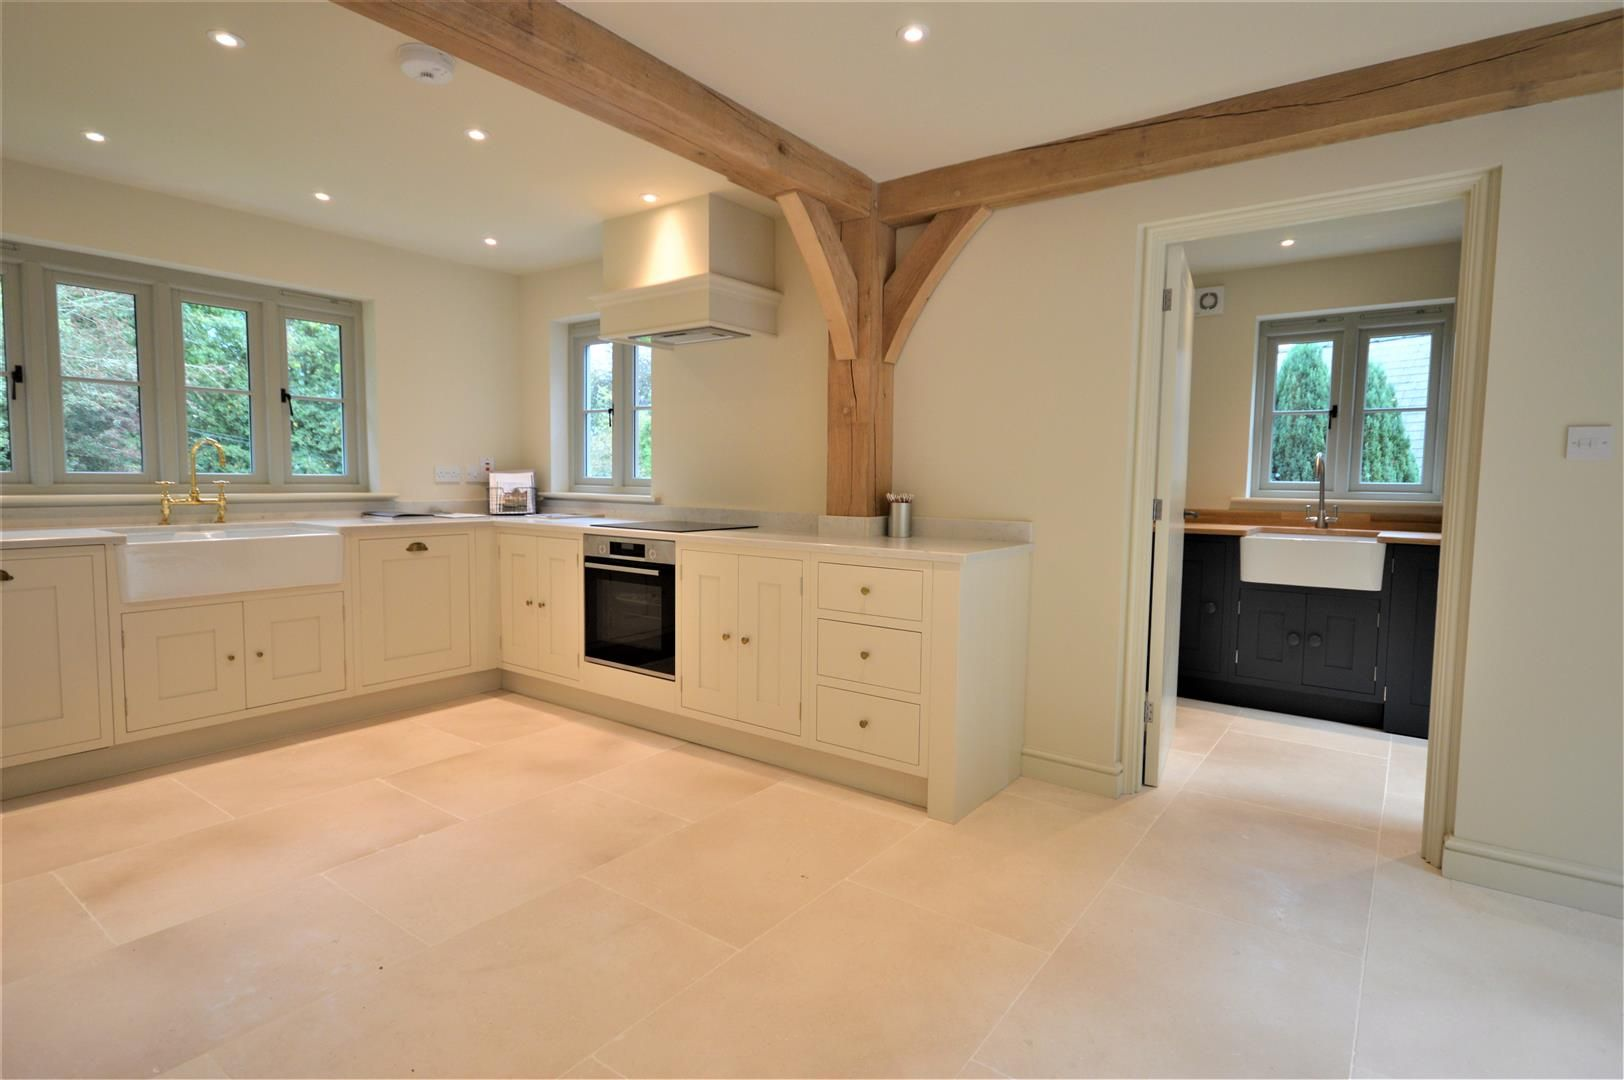 3 bed detached for sale in Dilwyn  - Property Image 2